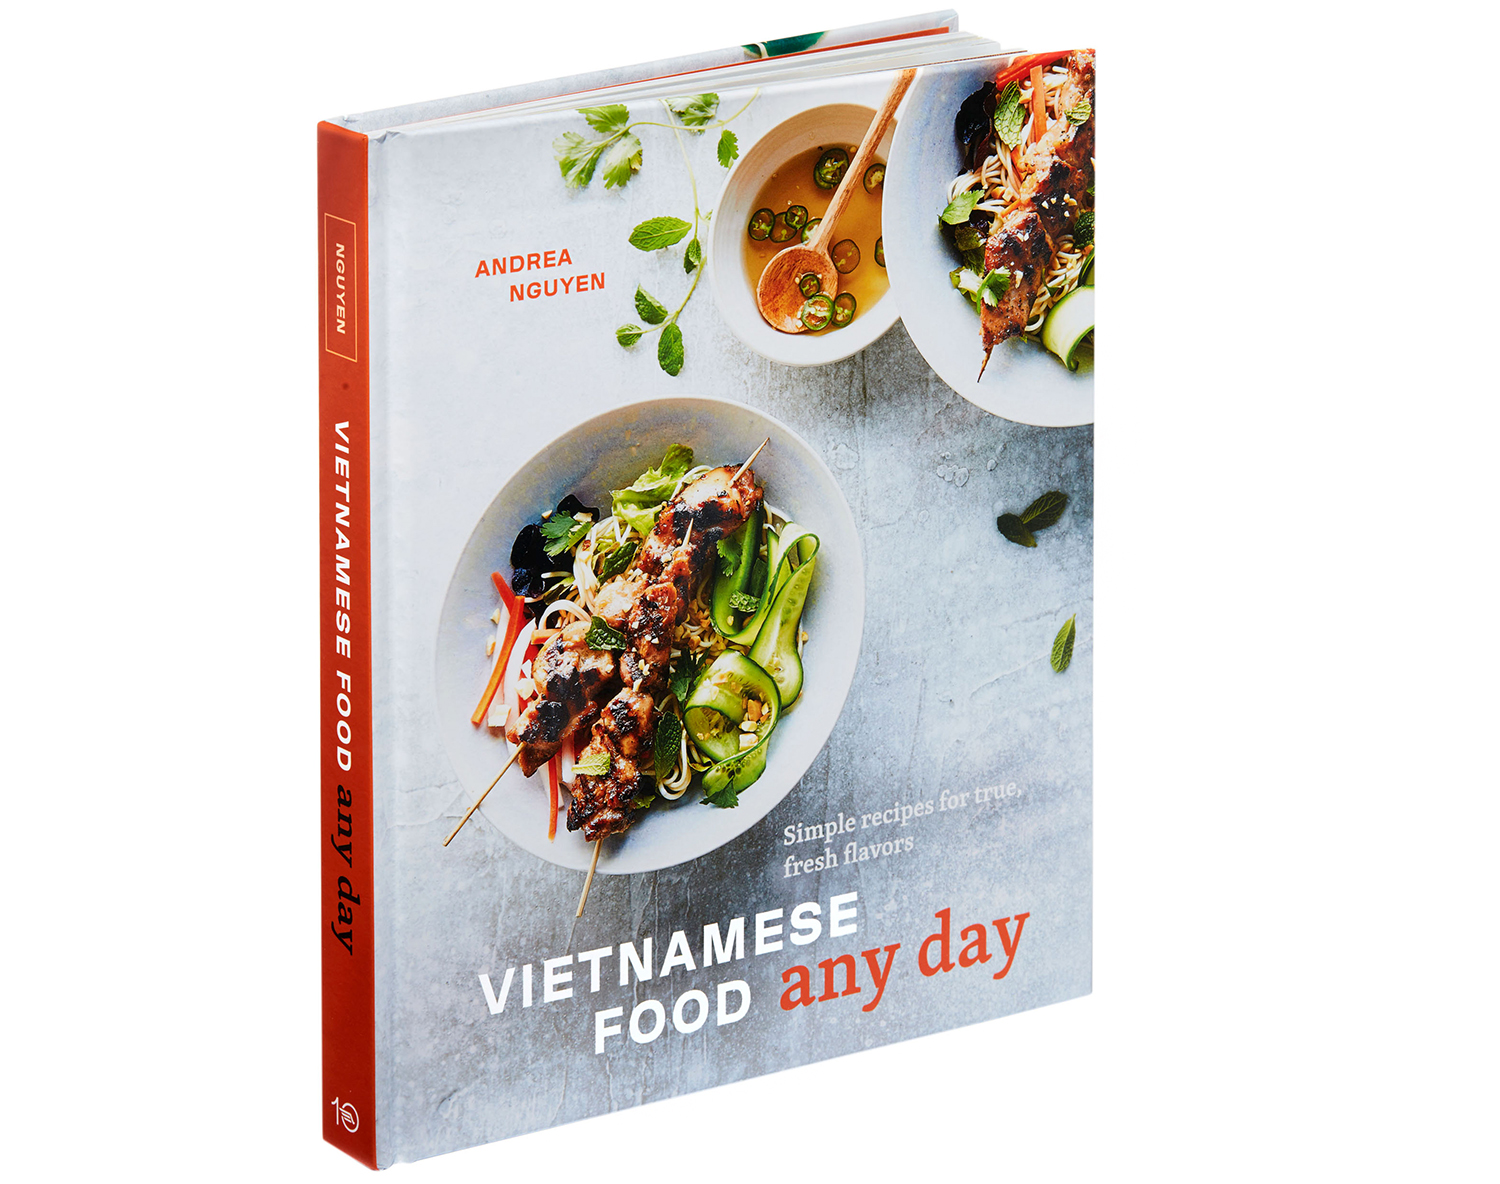 vietnamese food any day book cover